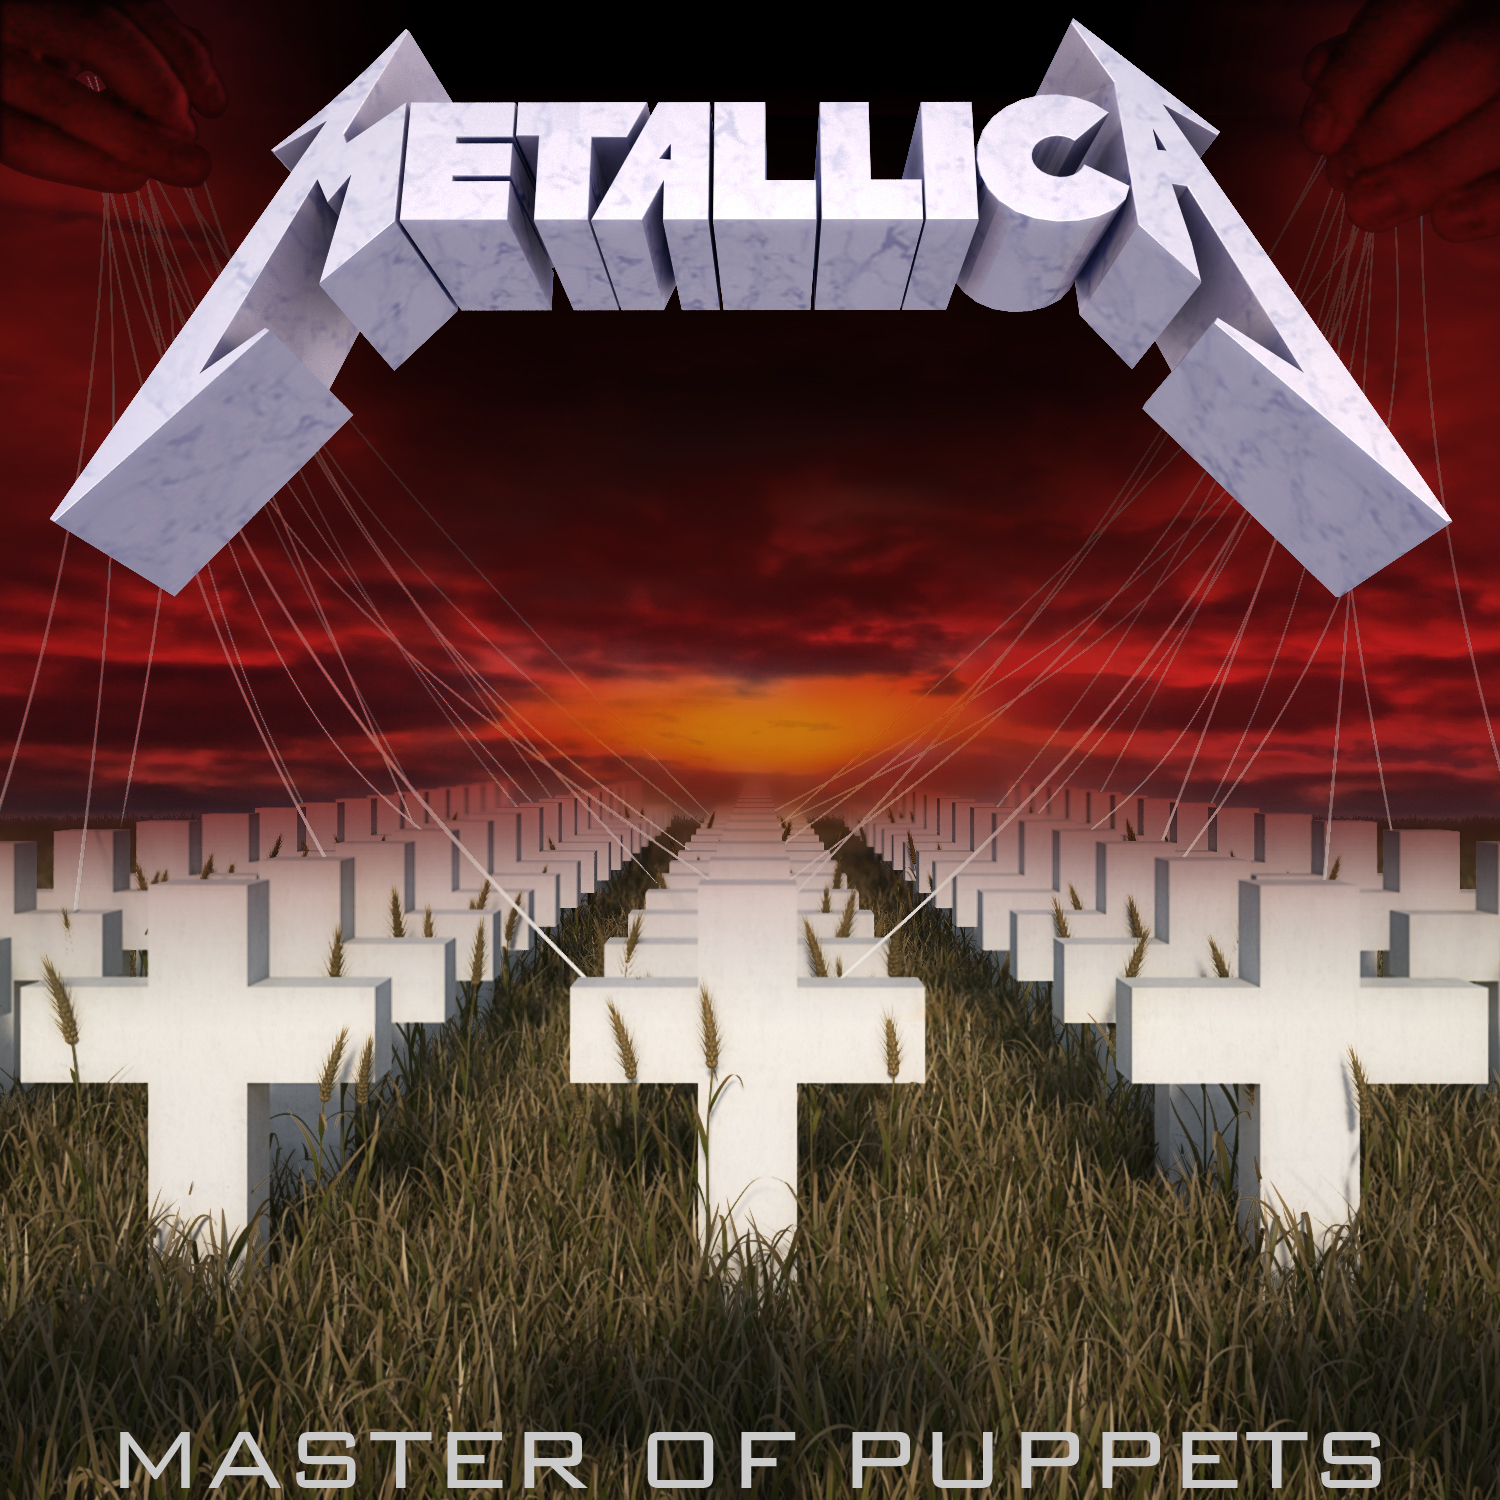 Master of Puppets Wallpaper - WallpaperSafari